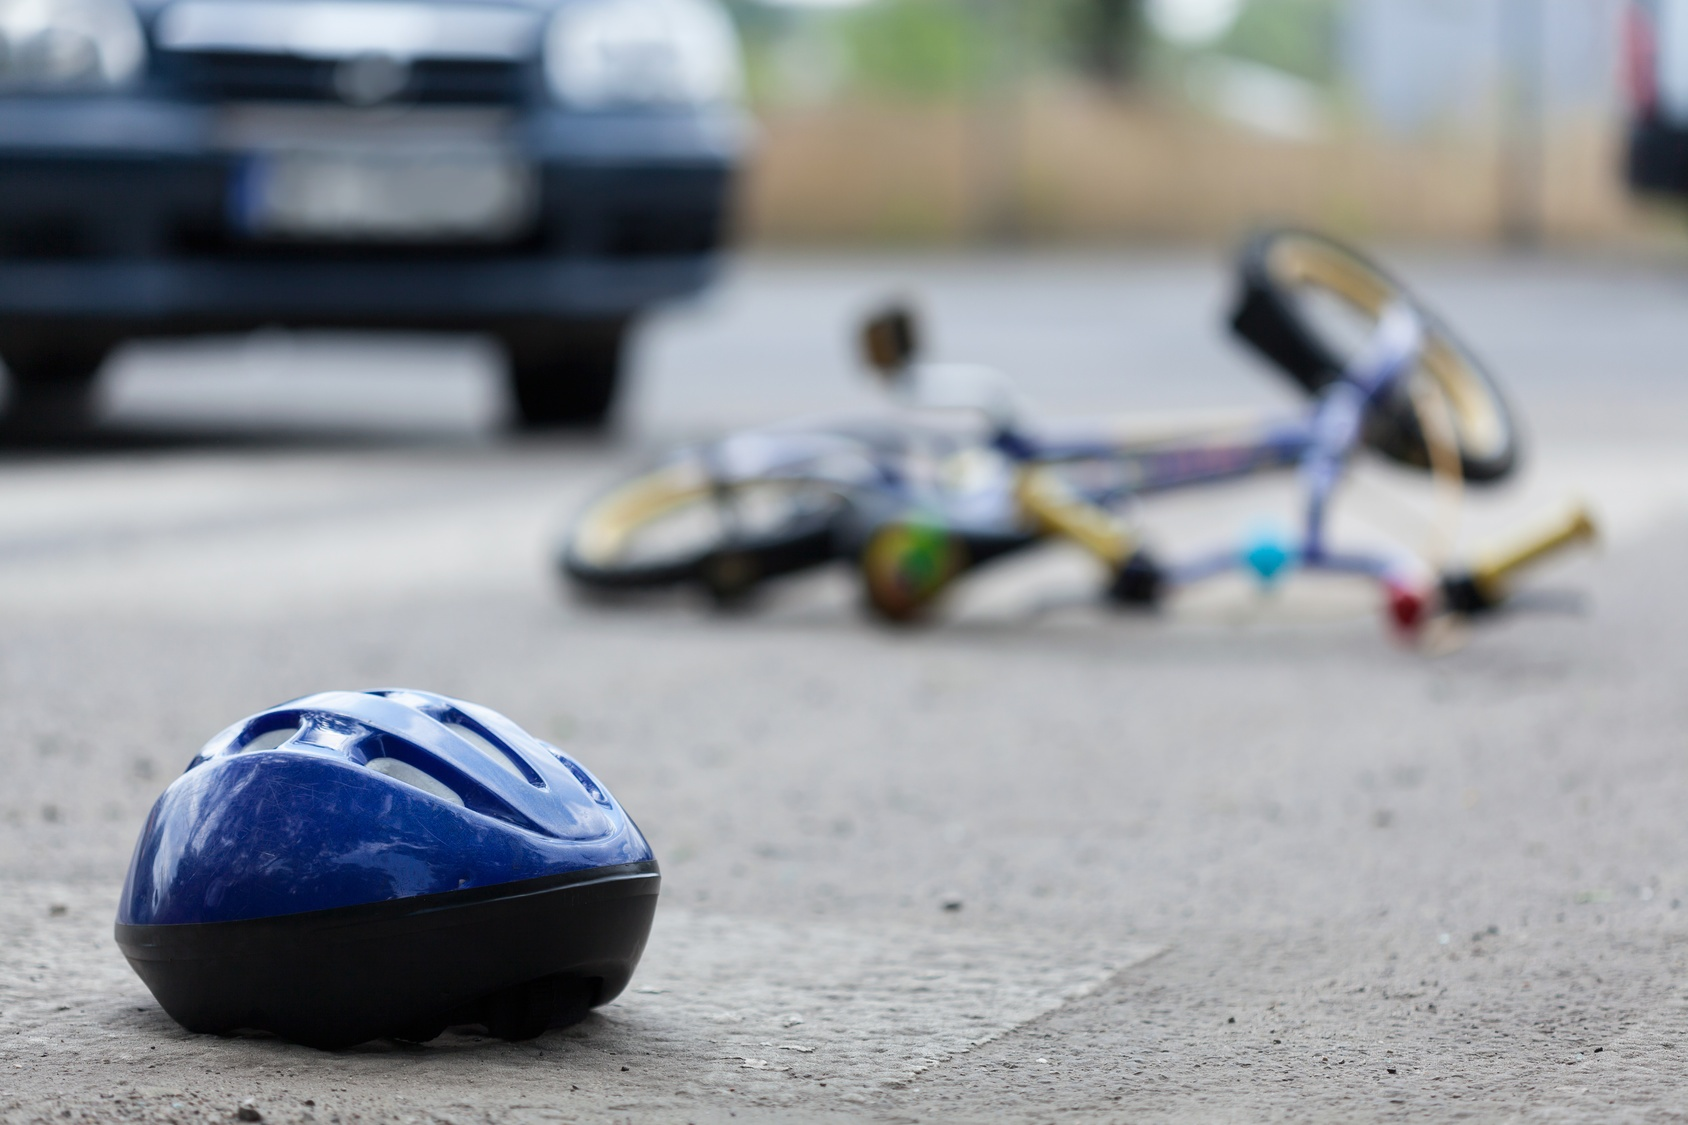 helmet, bicycle and car in the street after a collision